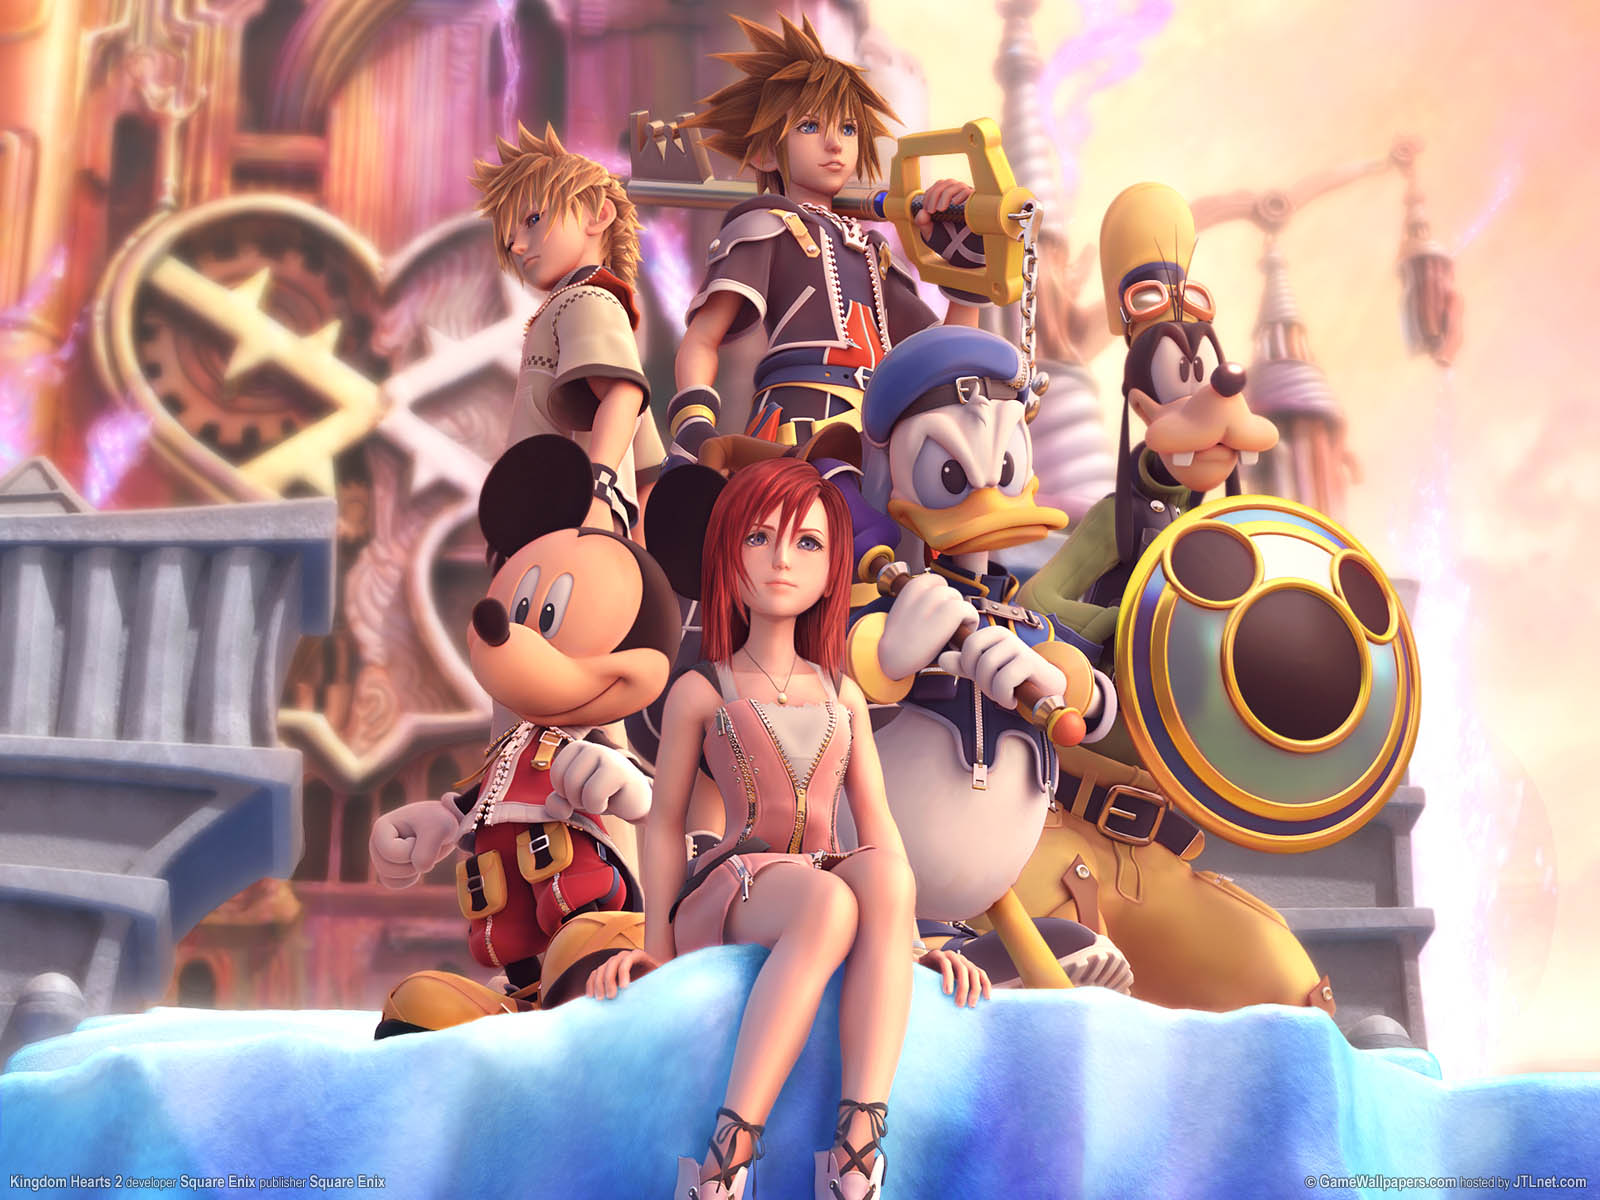 Hypah's game corner: Kingdom Hearts II review 64825